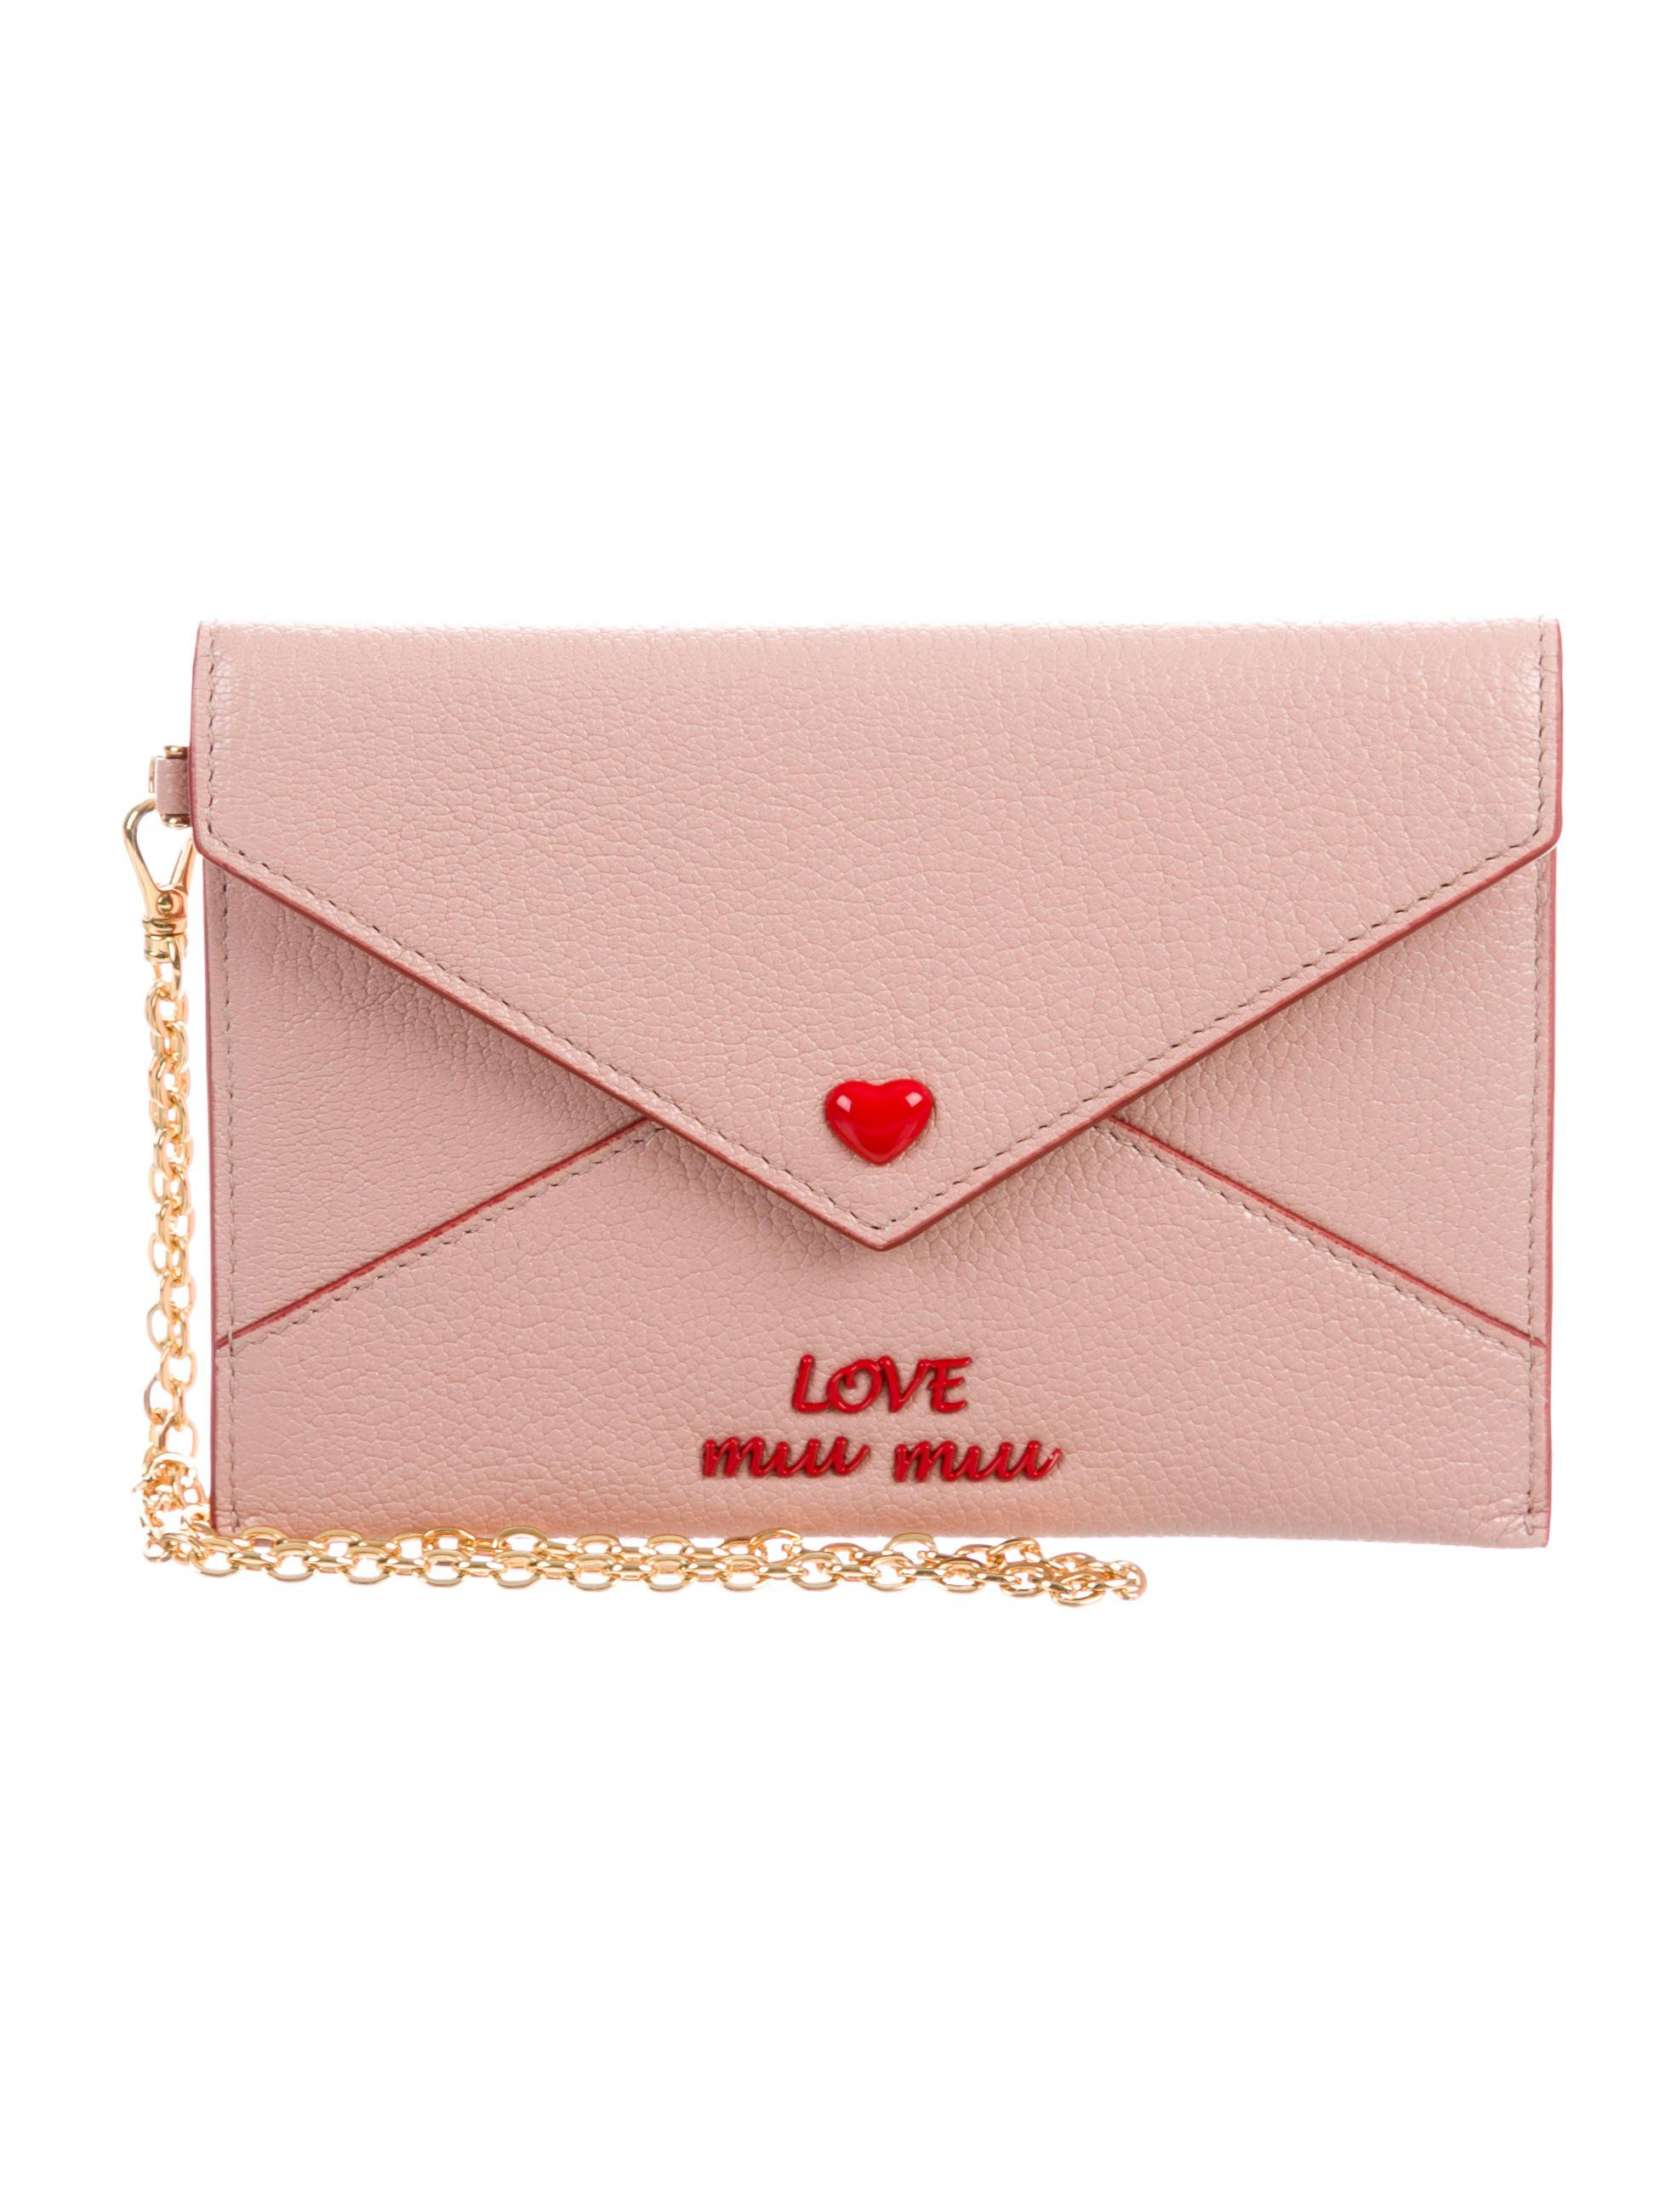 Miu Miu Madras Love Envelope Clutch - Accessories - MIU59814   The RealReal 6cc941ac7a